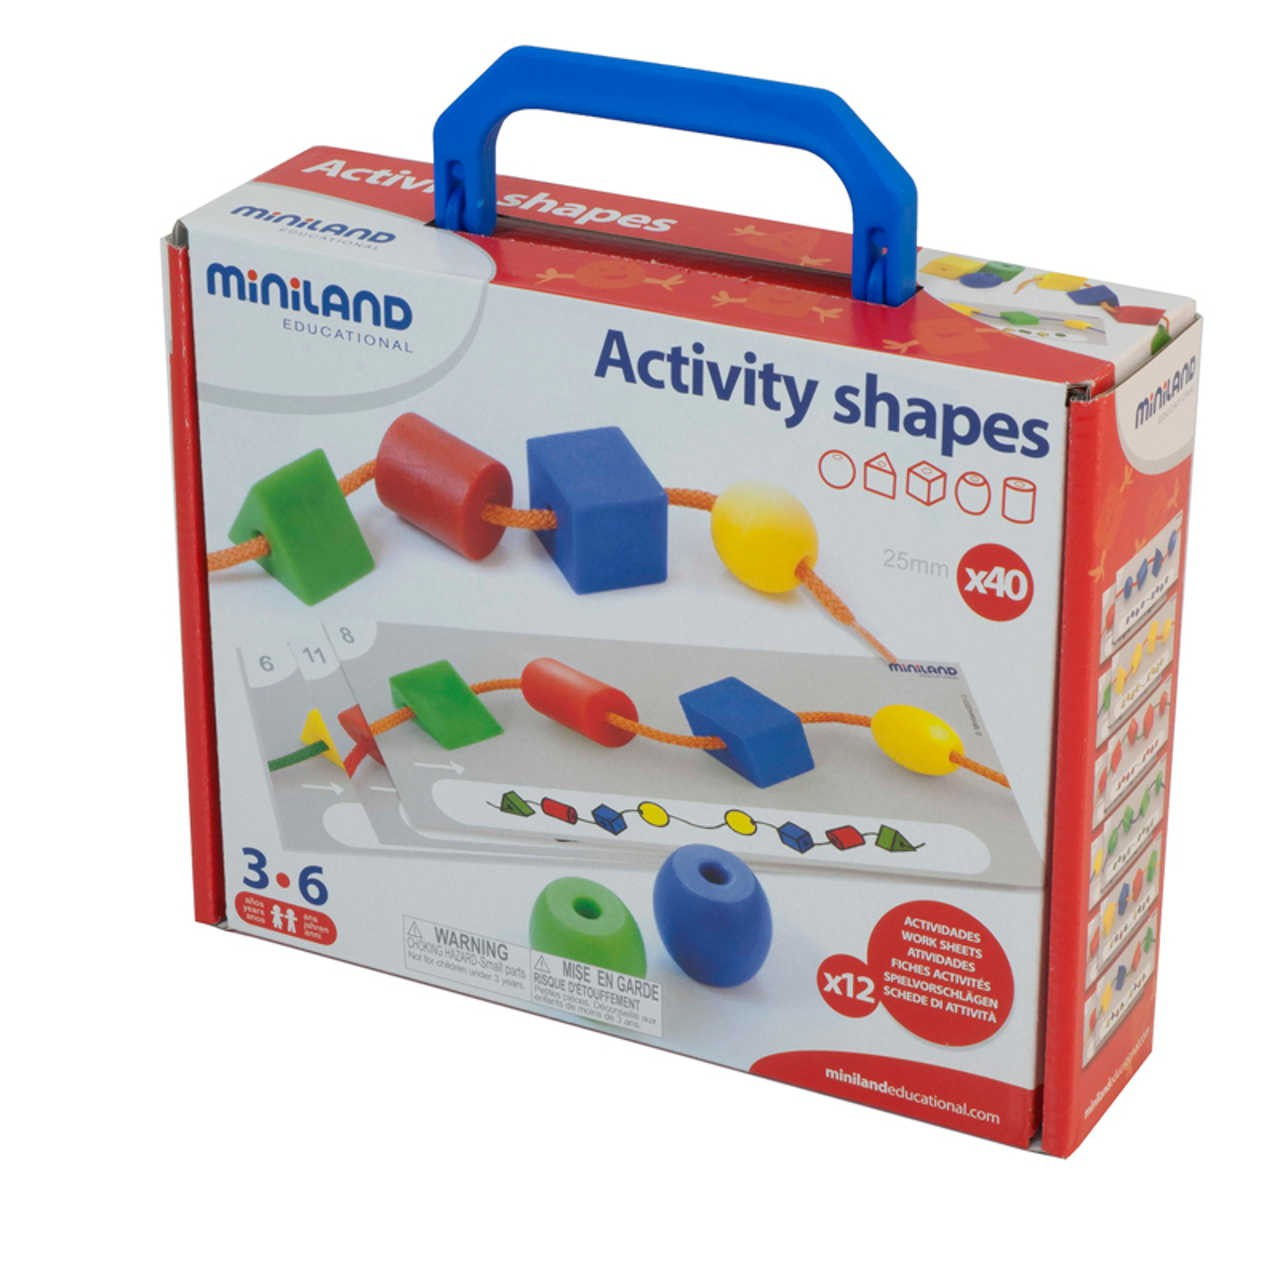 Activity Shapes - Joc d'Enfilar